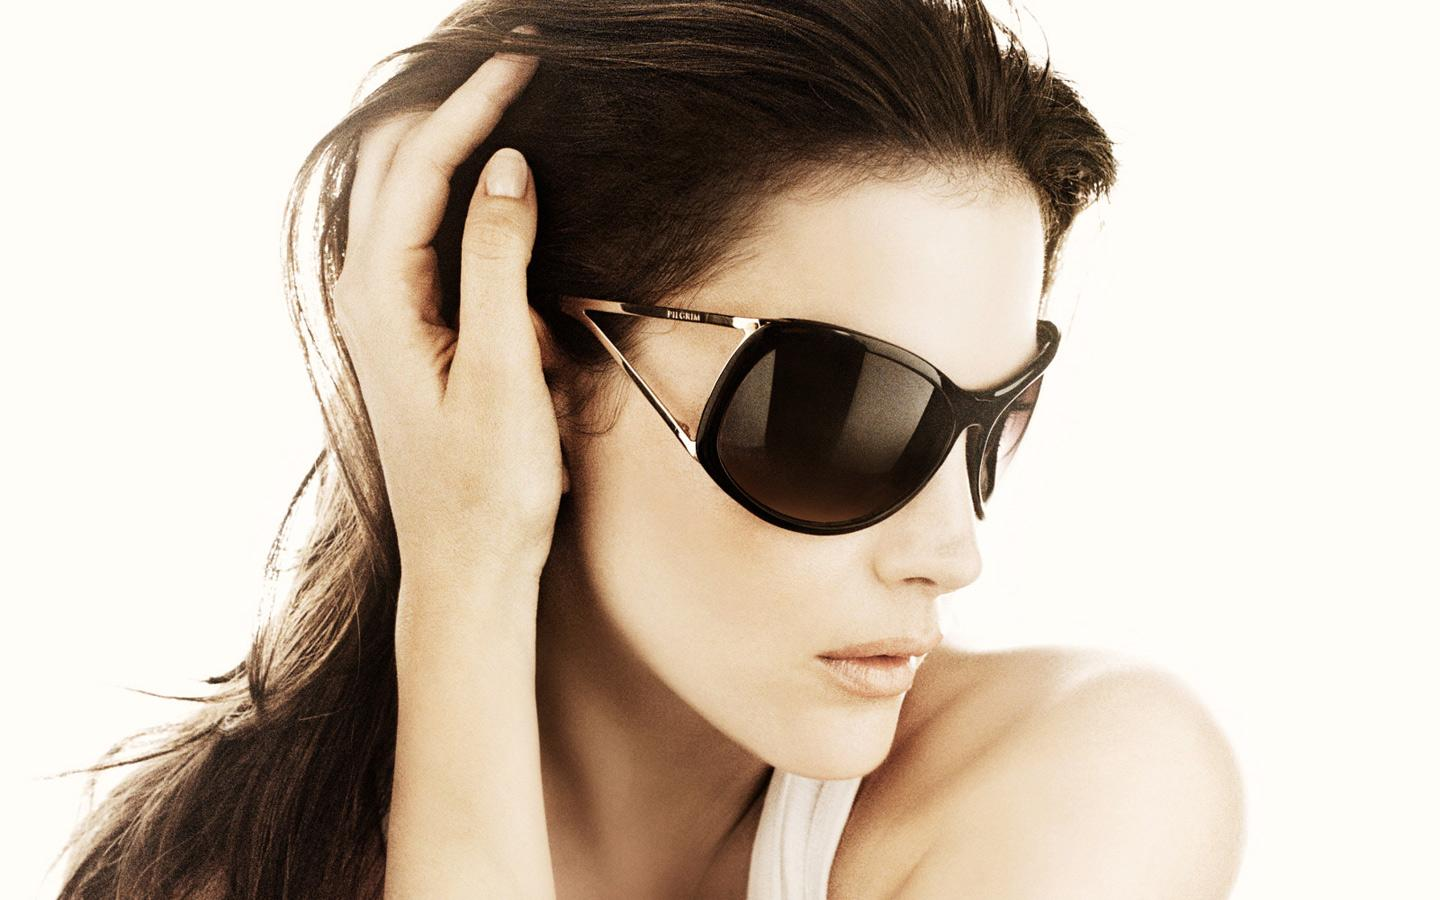 Prescription Wrap Around Sunglasses  can wrap around sunglasses be made with prescription lenses